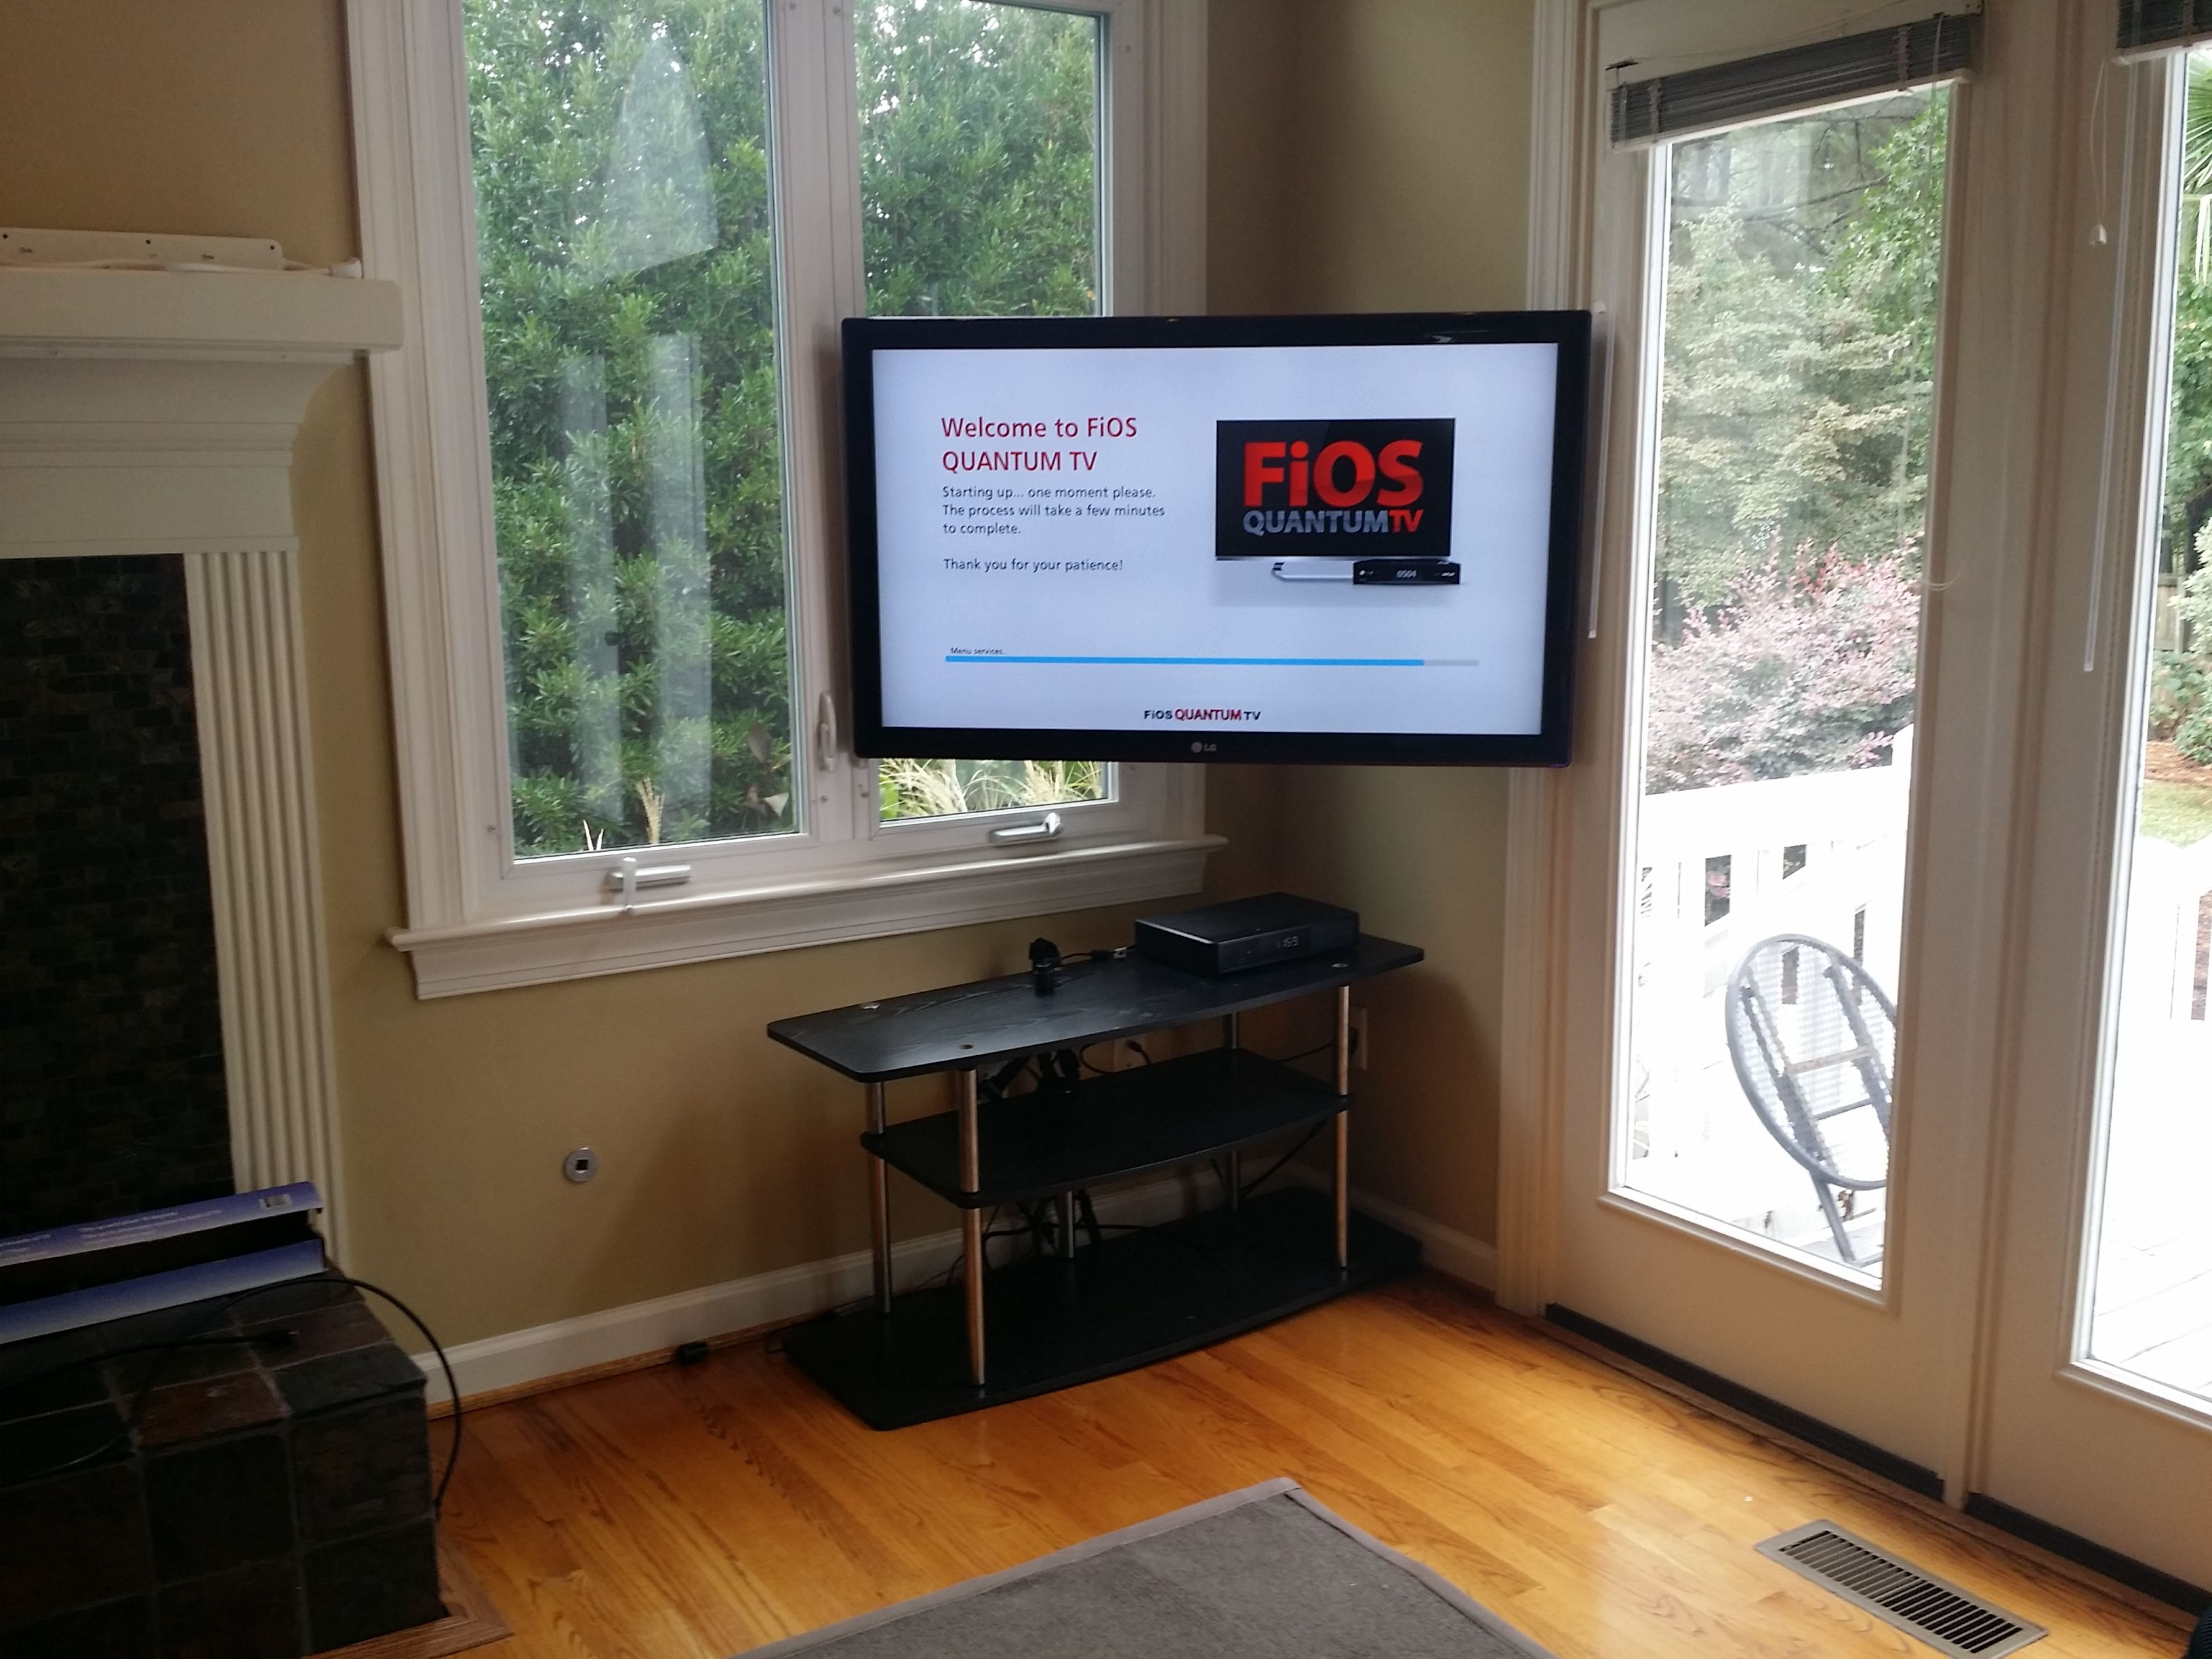 Wall Mounted Tv Setup Ideas Have And Awkward Setup And Need Your Tv Mounted In The